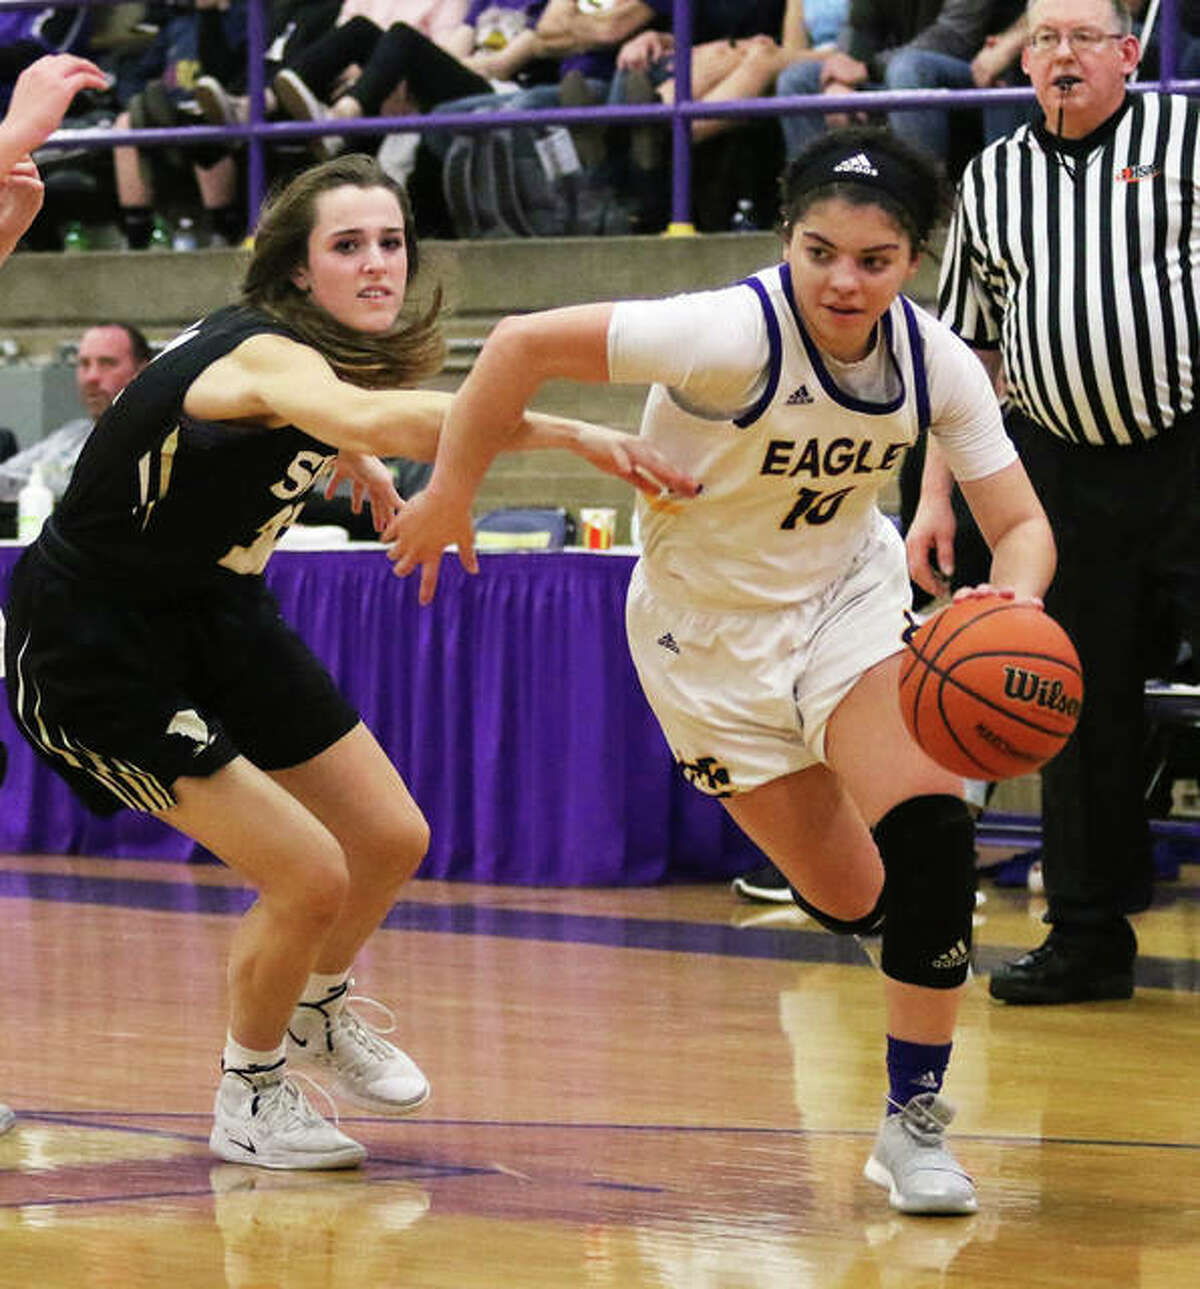 CM's Kourtland Tyus (right) drives past a Springfield SHG defender in last season's Class 3A sectional at Taylorville. Tyus and the Eagles were back in Taylorville on Friday and Saturday for three victories in the Taylorville Tourney.